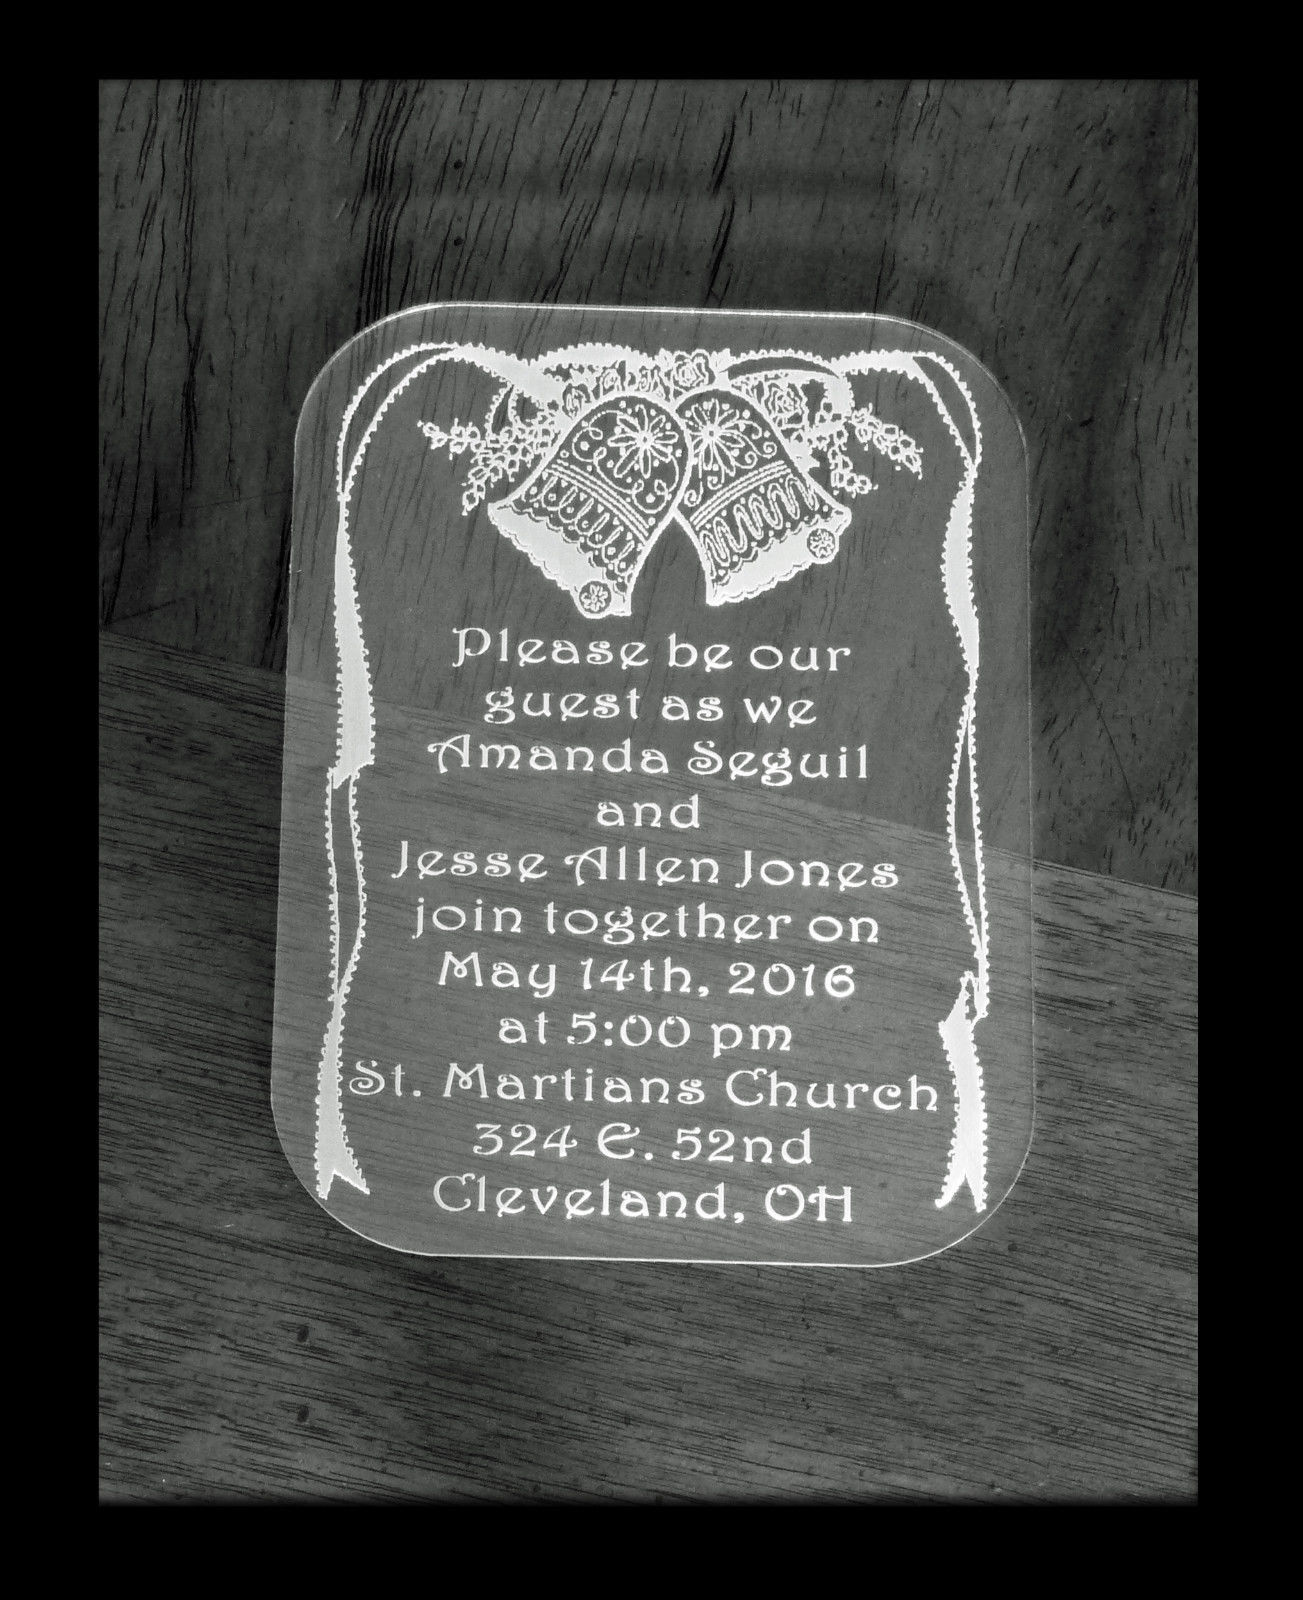 Personalized Acrylic Wedding Invitations, Special Event Invitations image 2